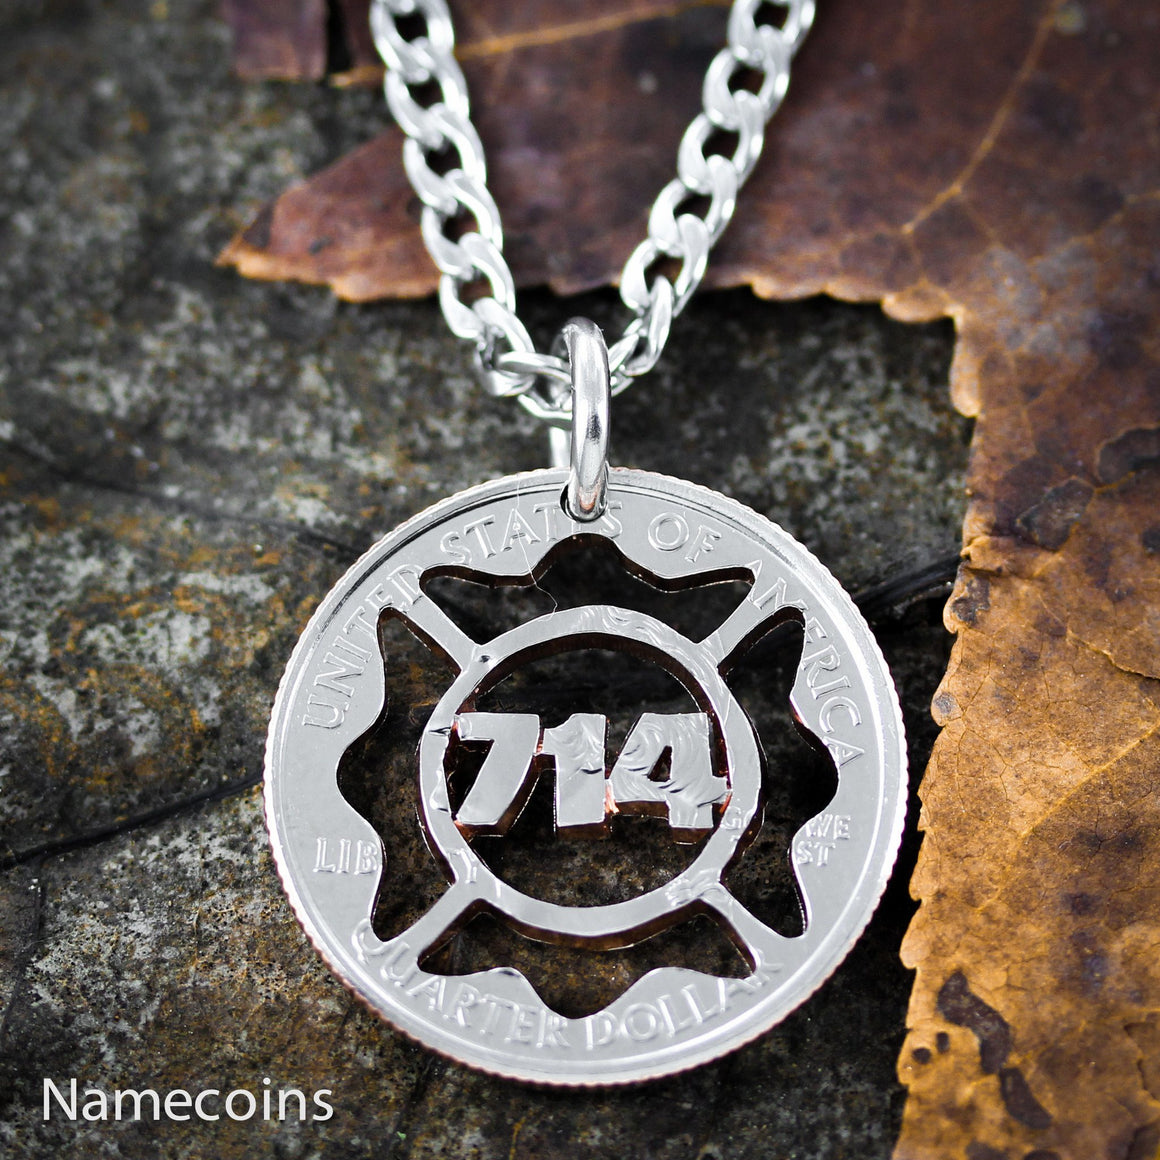 Firefighter Number In Maltese Cross Necklace